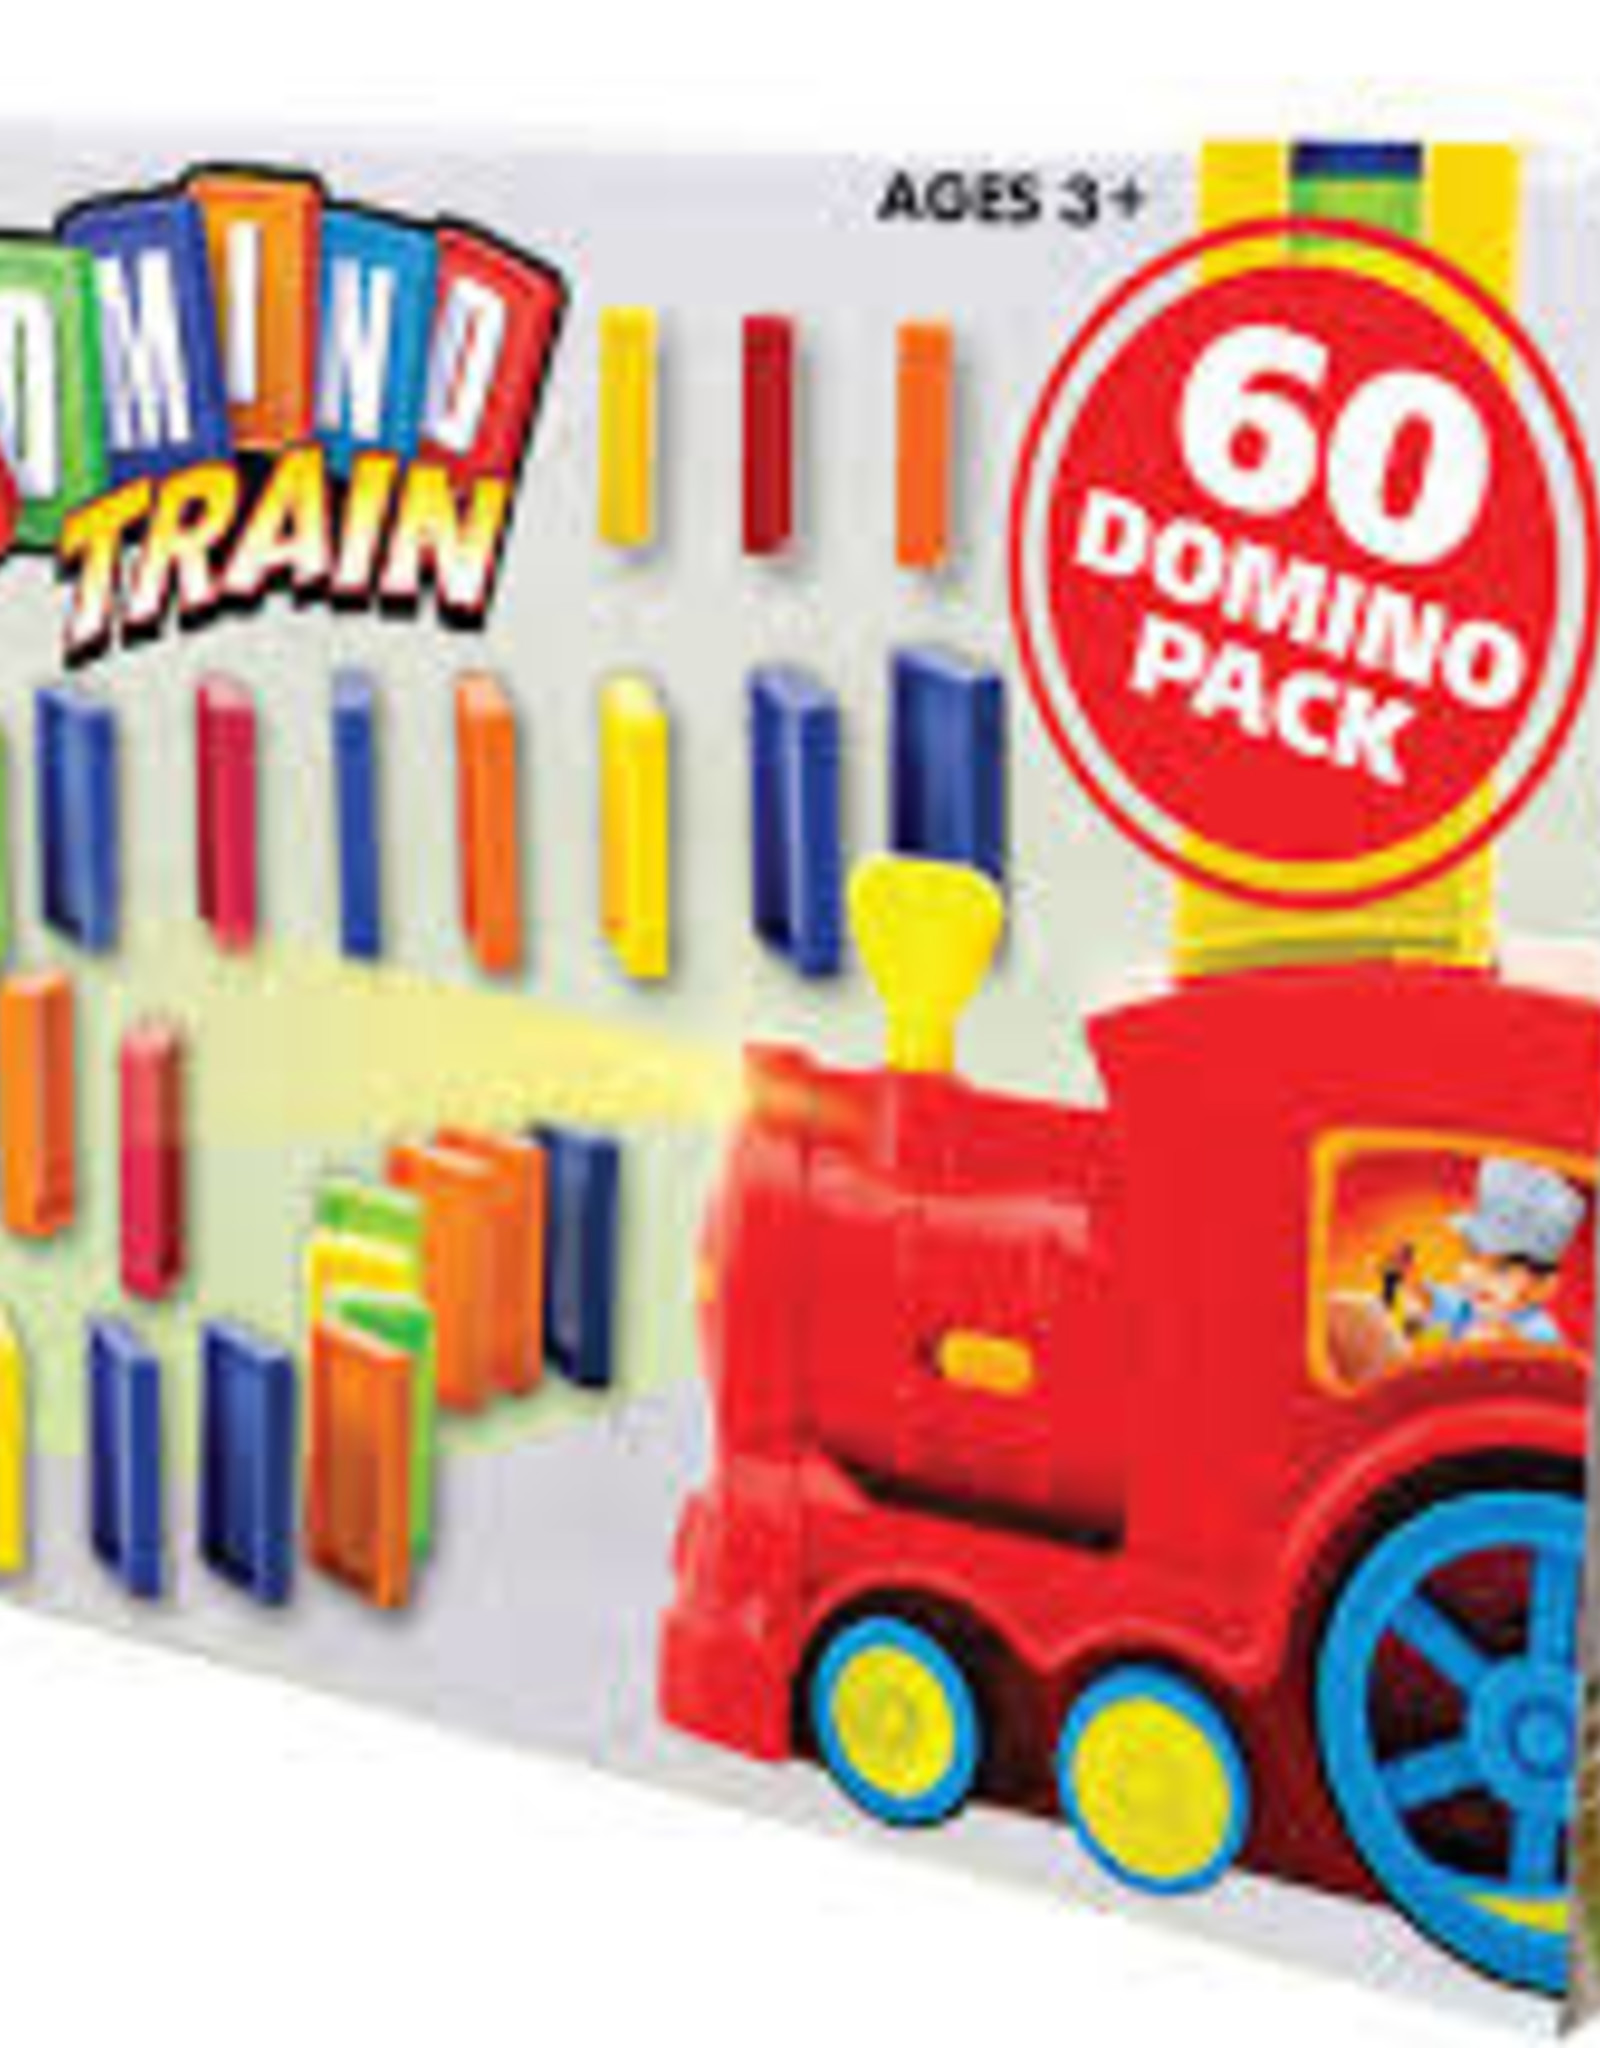 Schylling Domino Train 60 refill pack